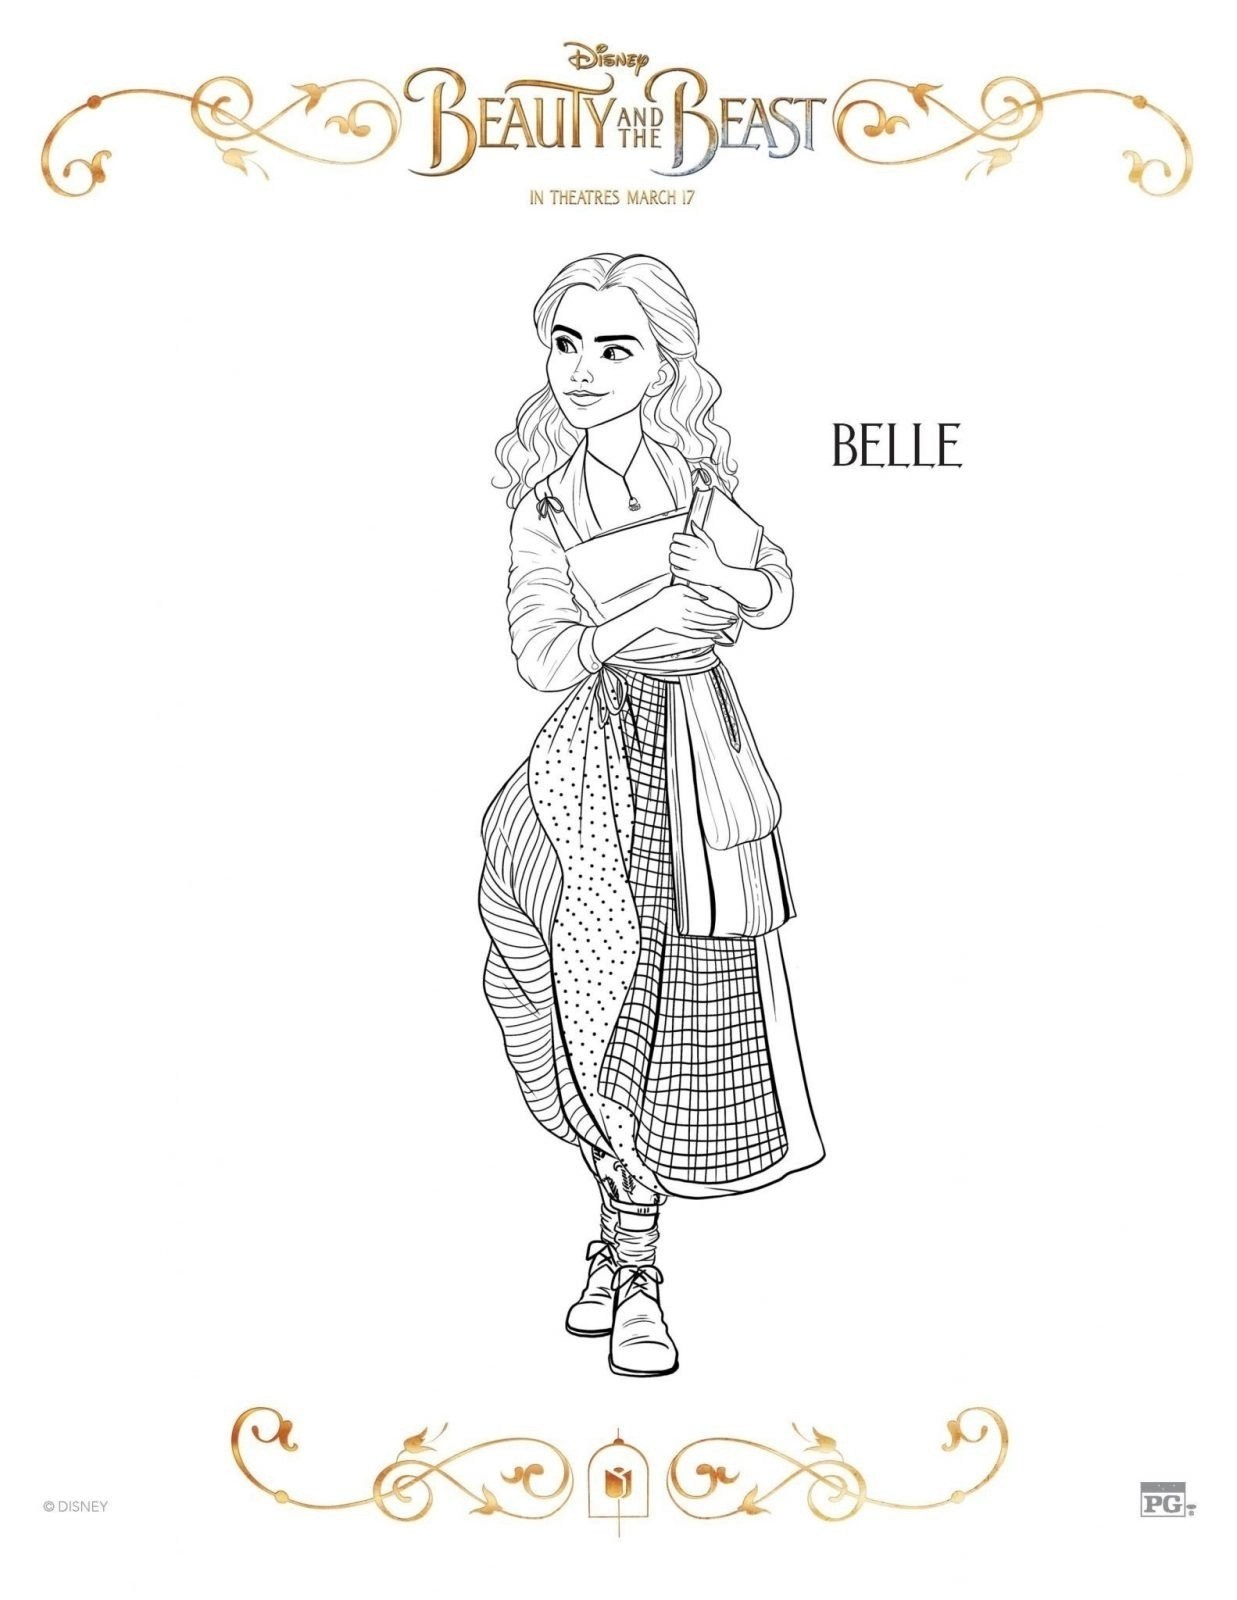 Belle Beauty and the Beast Coloring Sheet